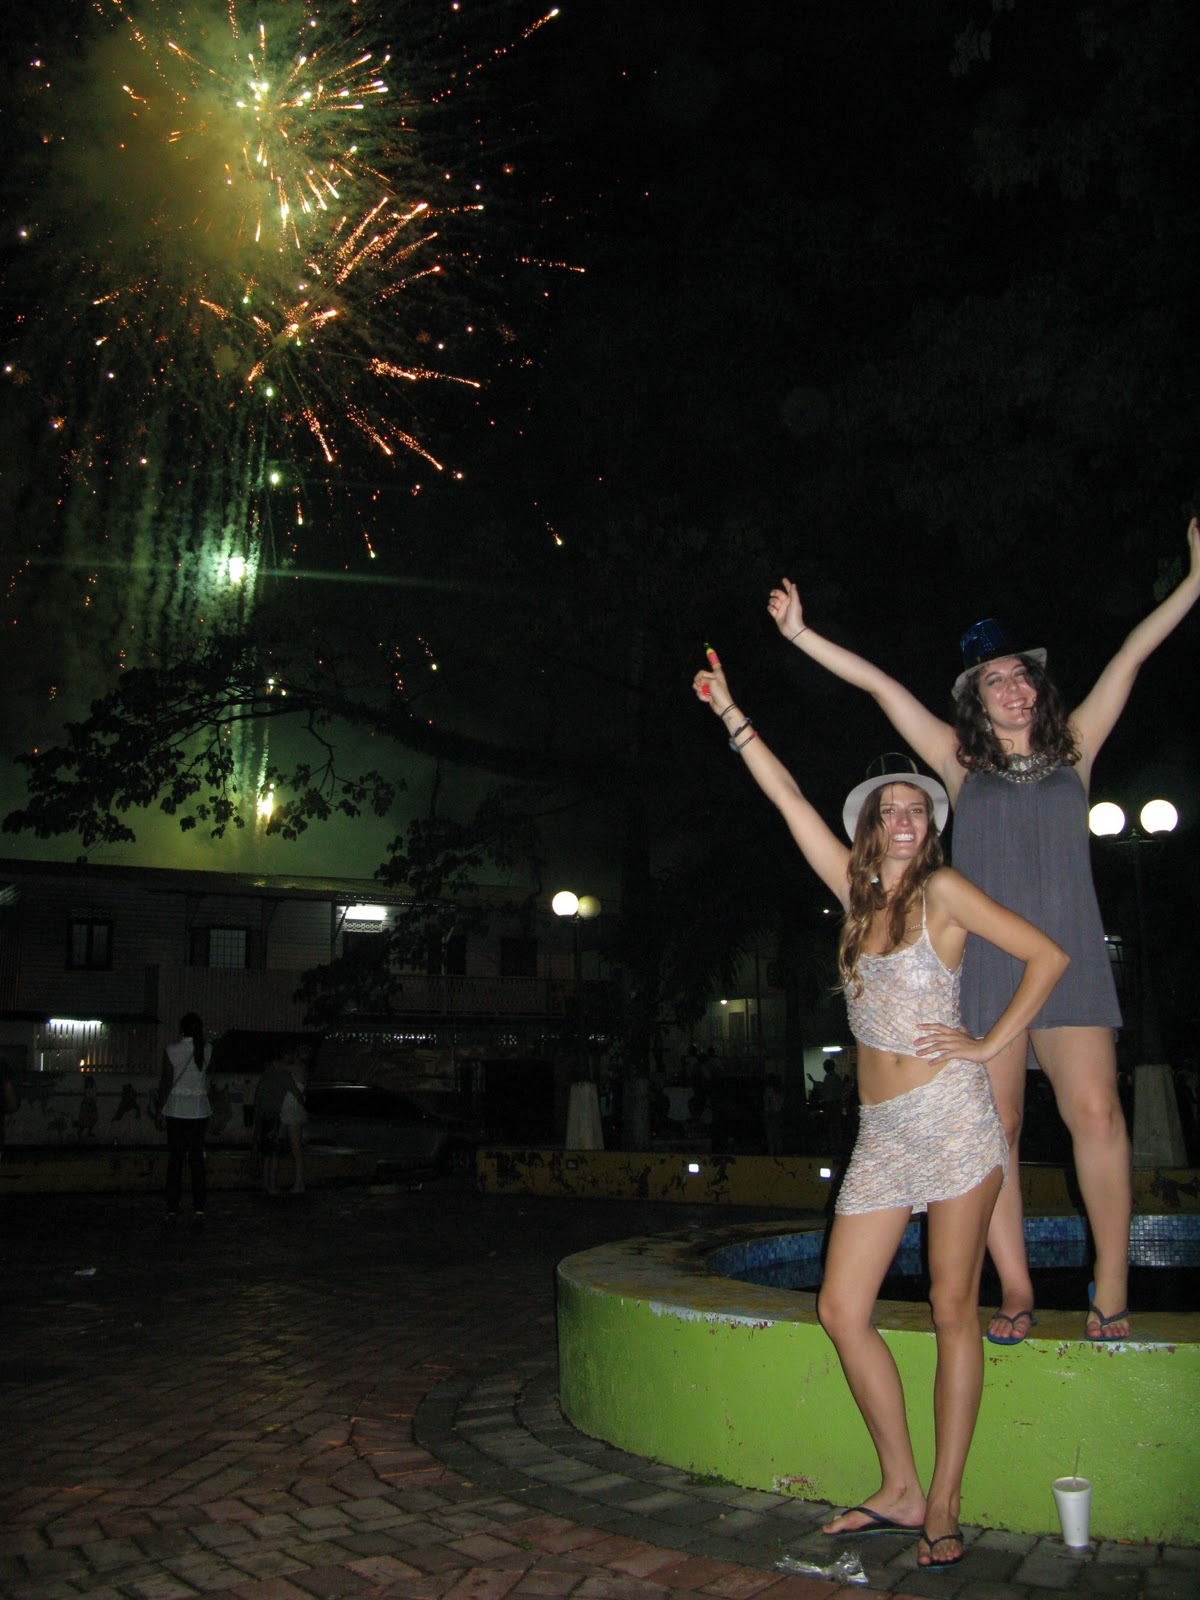 happy new year from bocas del toro panama